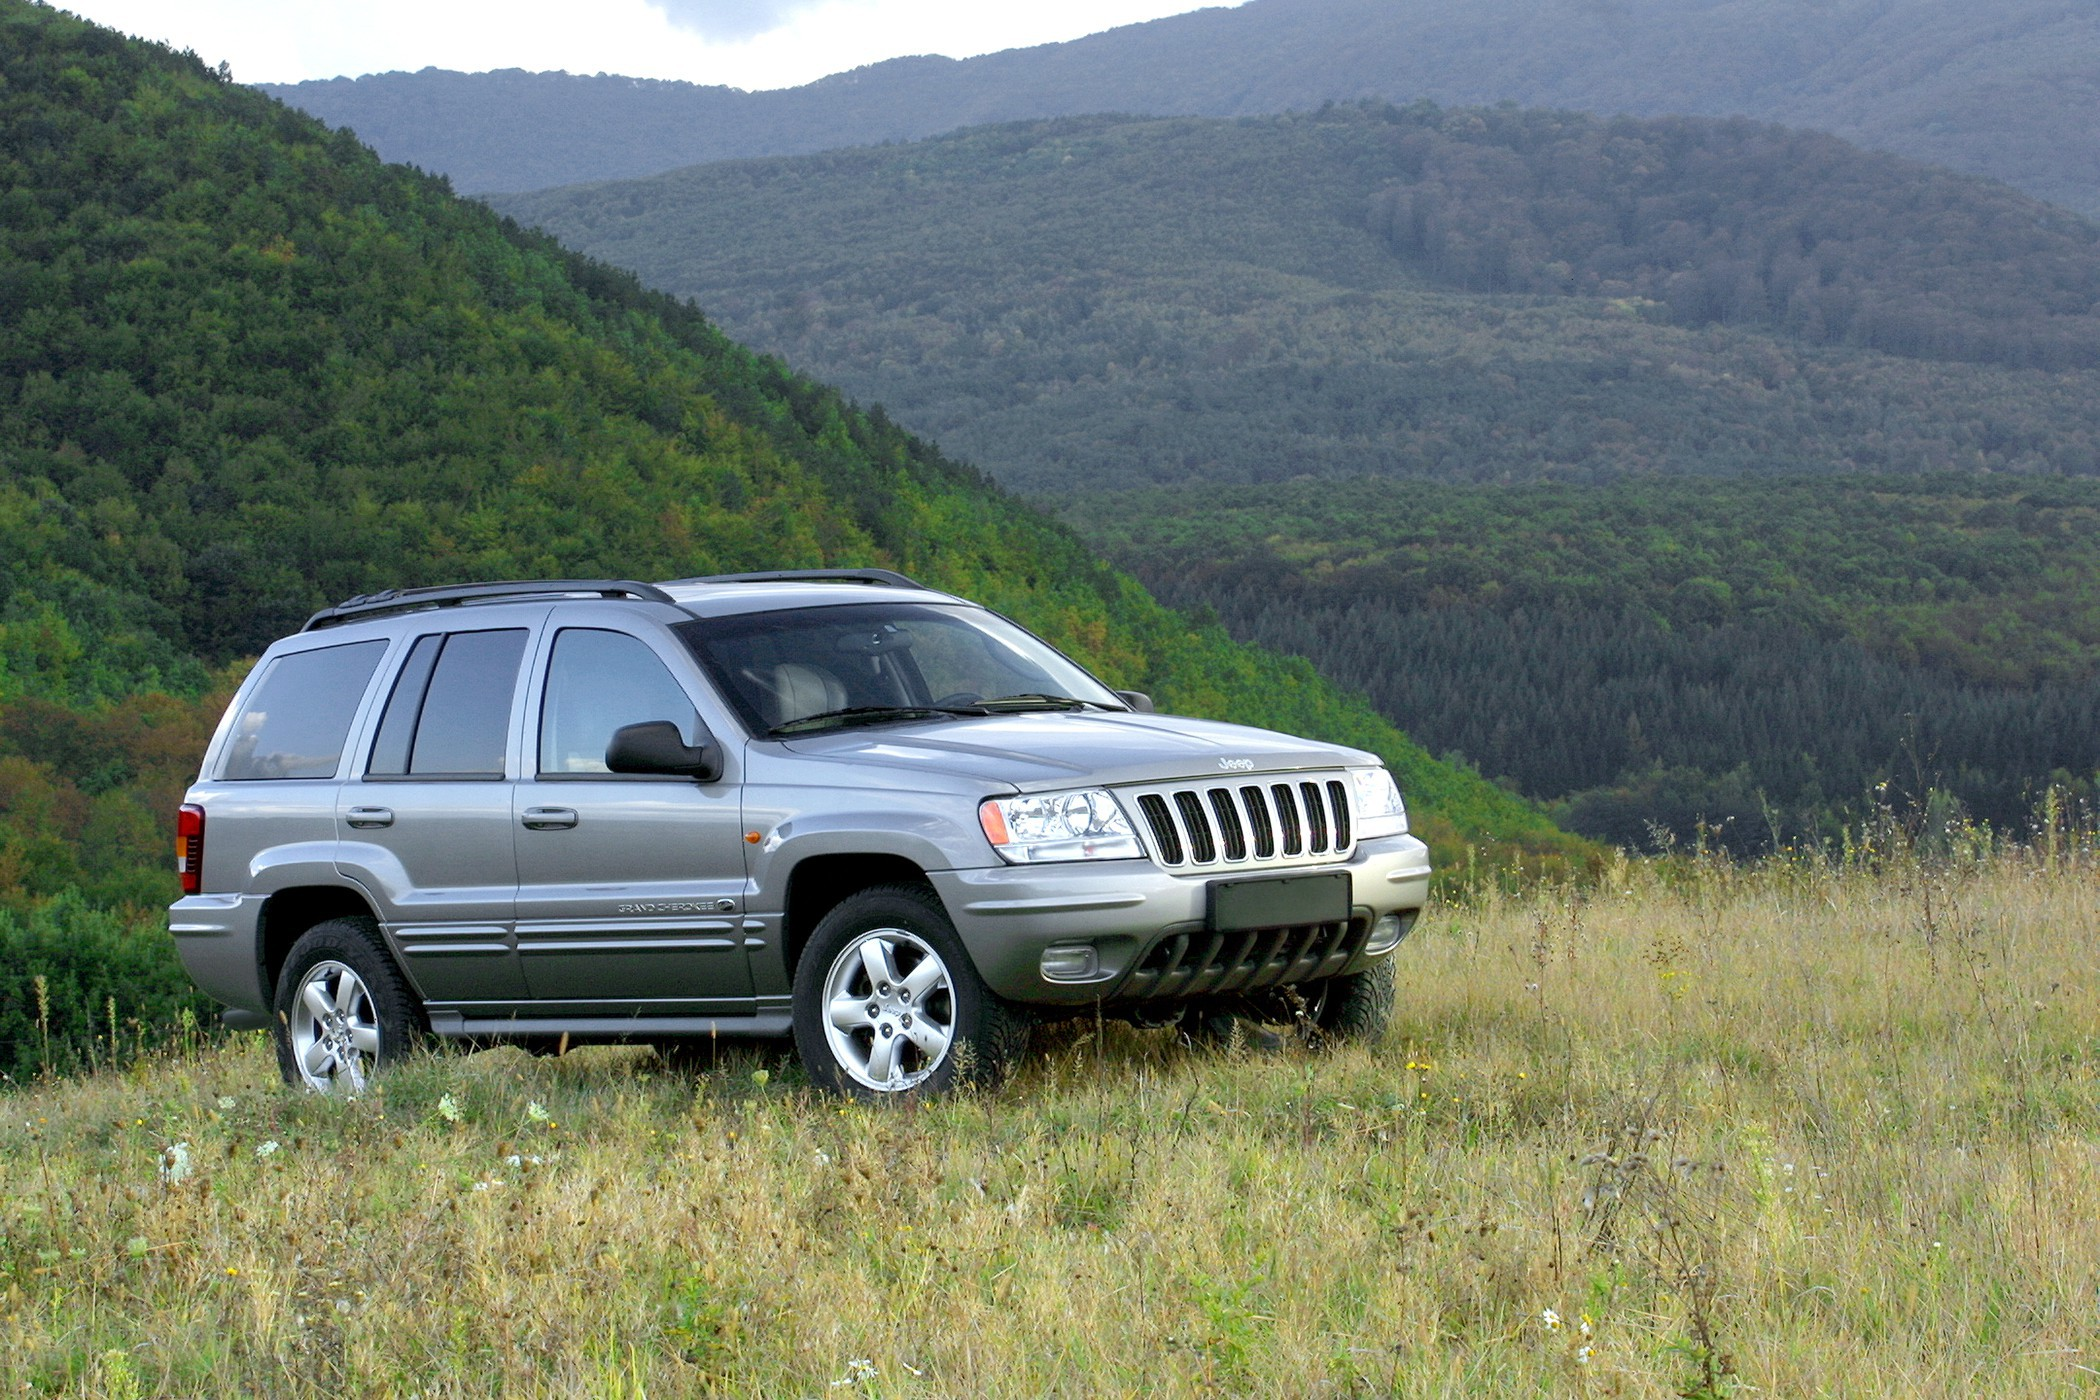 Jeep Grand Cherokee 1999 Door Sport Utility Vehicle 5 Doors